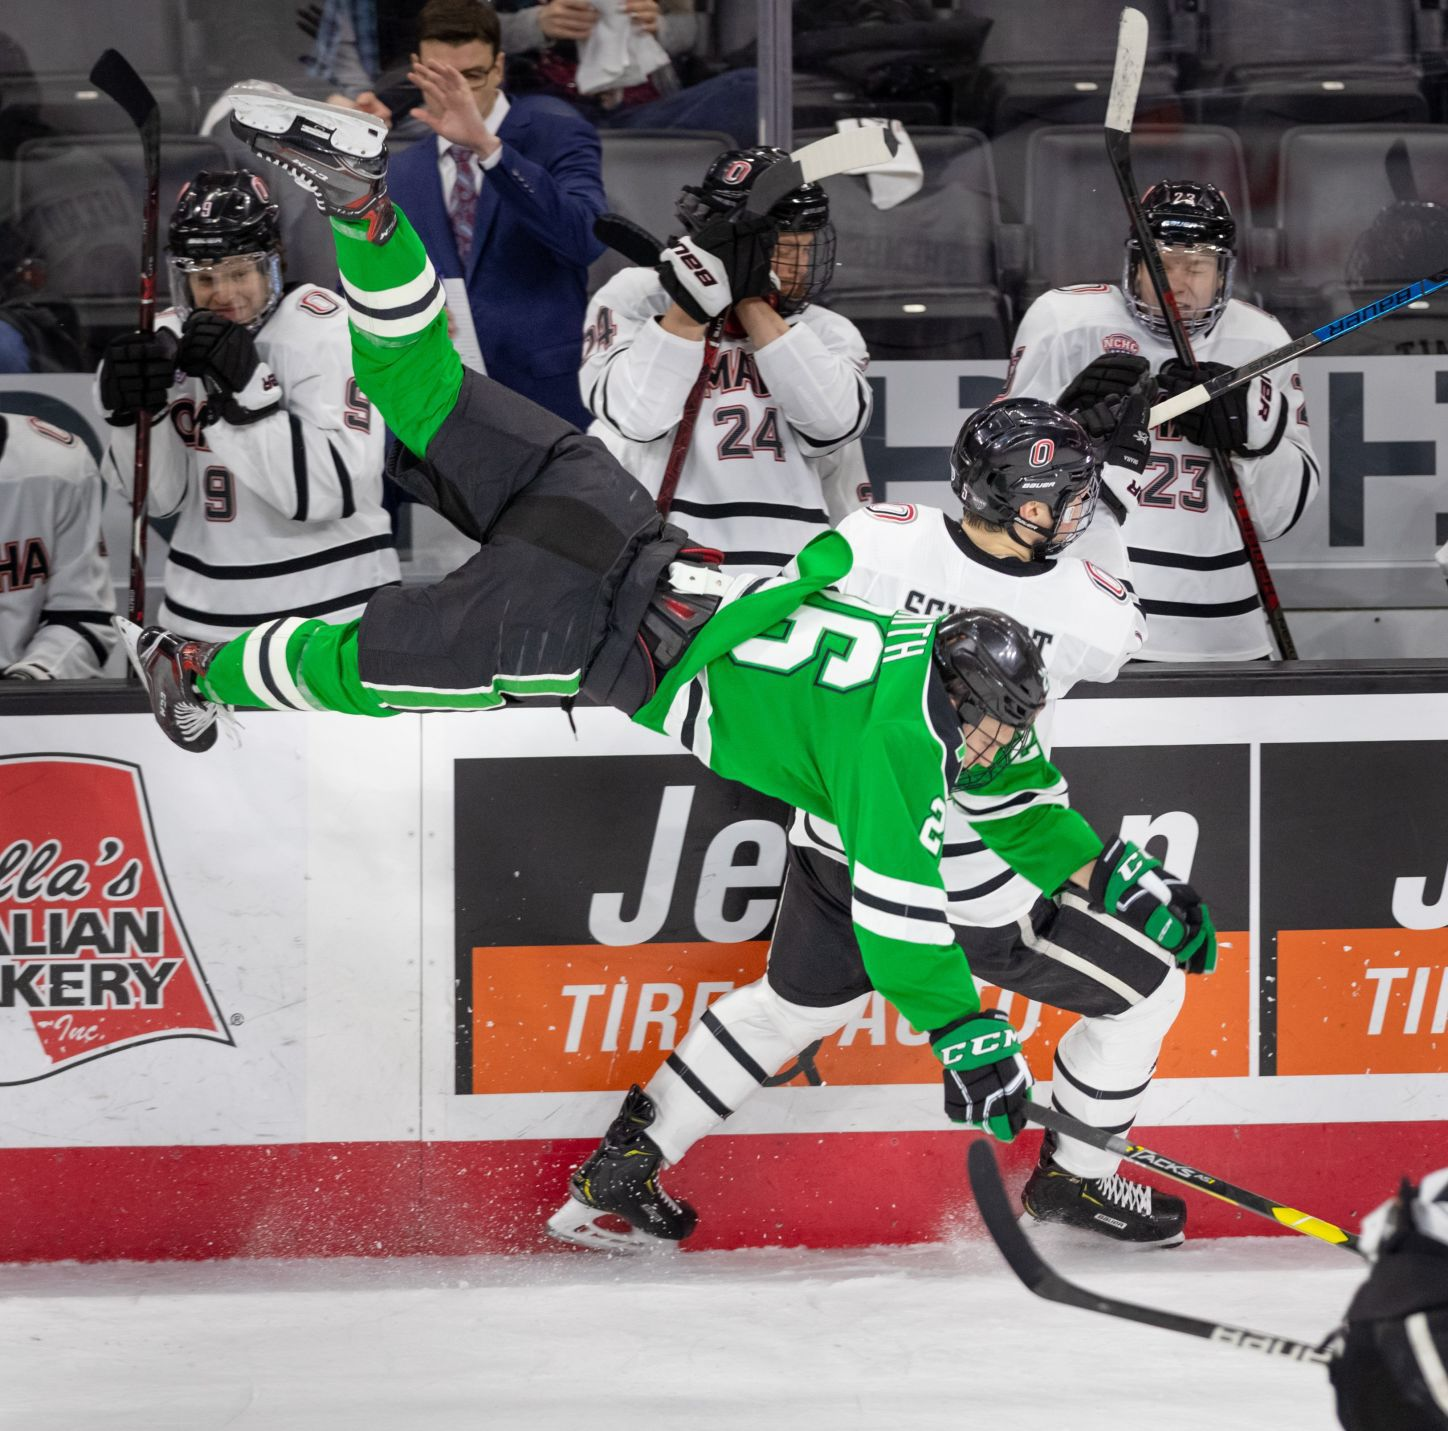 NCHC: UNO Hockey Defeats No. 20 North Dakota To Earn First NCHC Win Since Nov. 20